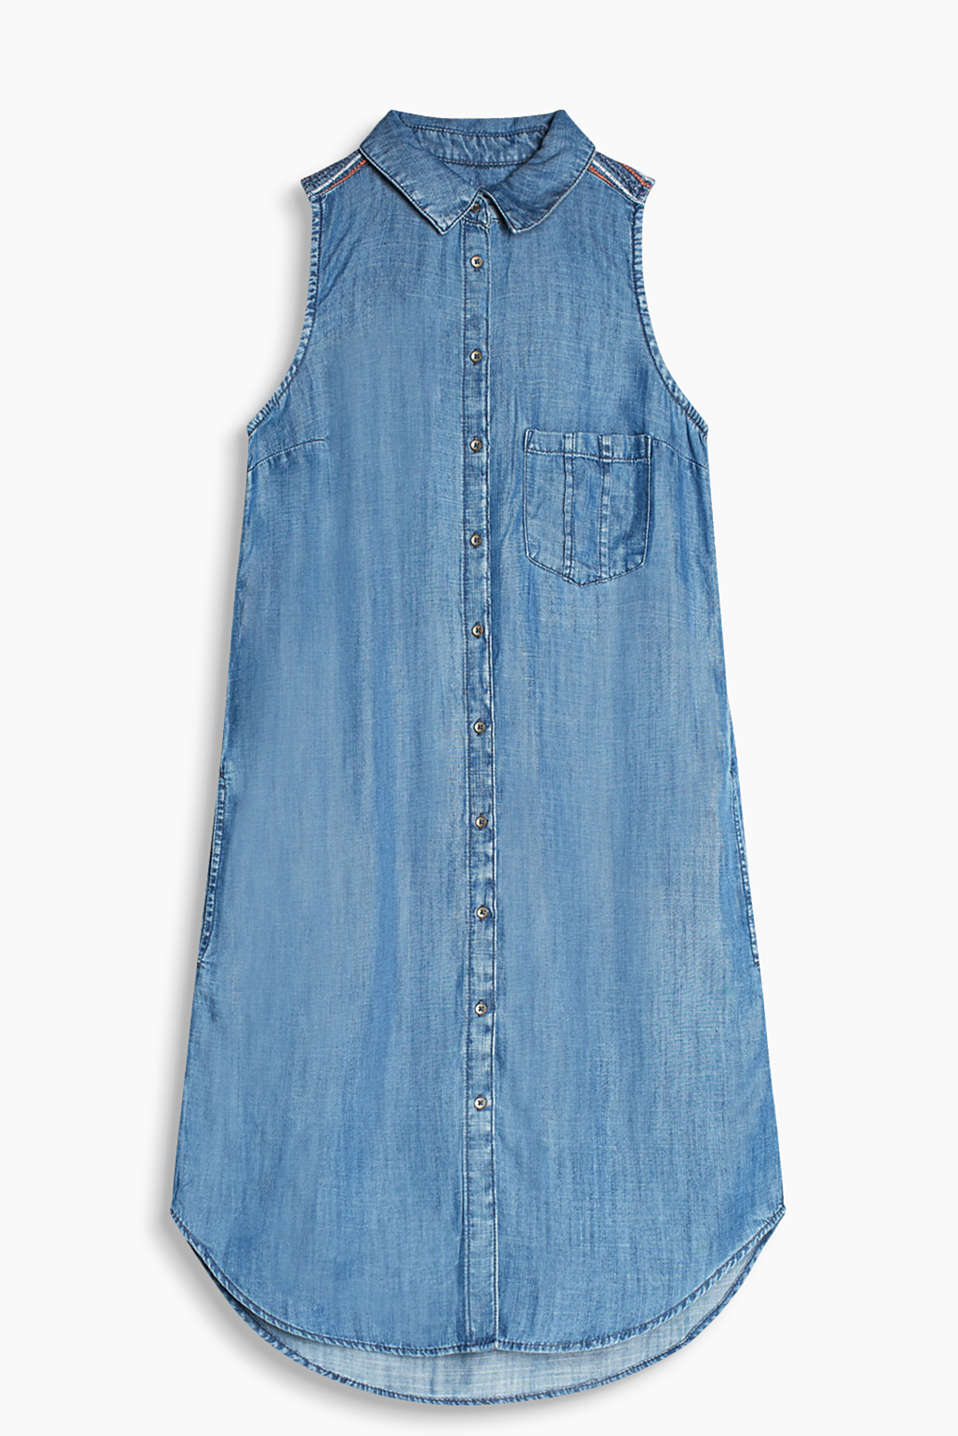 Sleeveless shirt dress made of flowing denim with an embroidered shoulder yoke